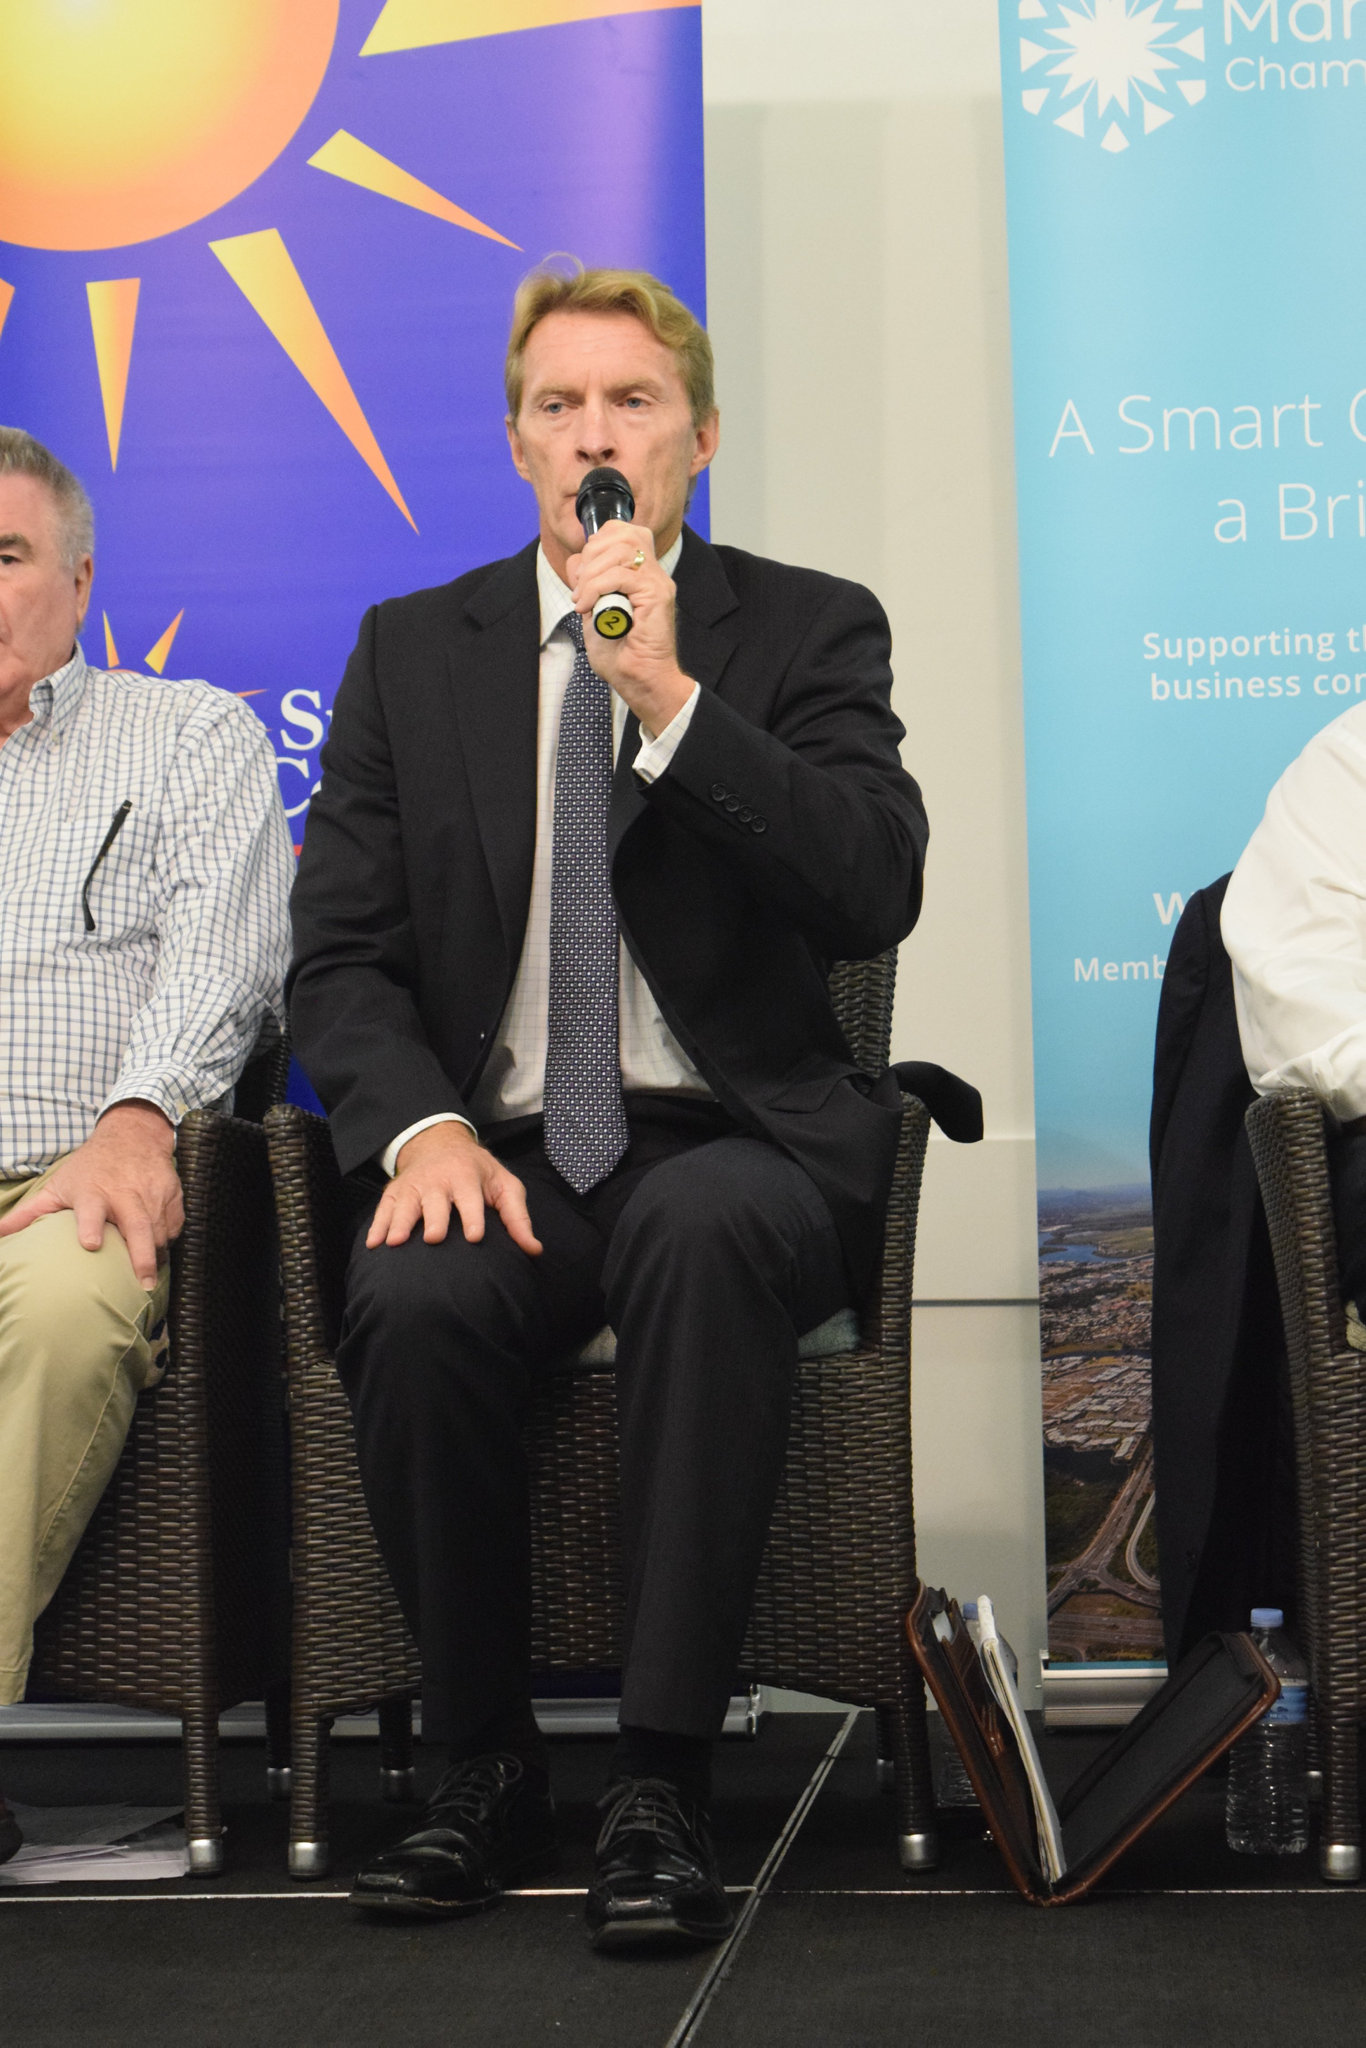 Mayoral candidate Chris Thompson speaks at a Sunshine Coast Daily election forum in Maroochydore.